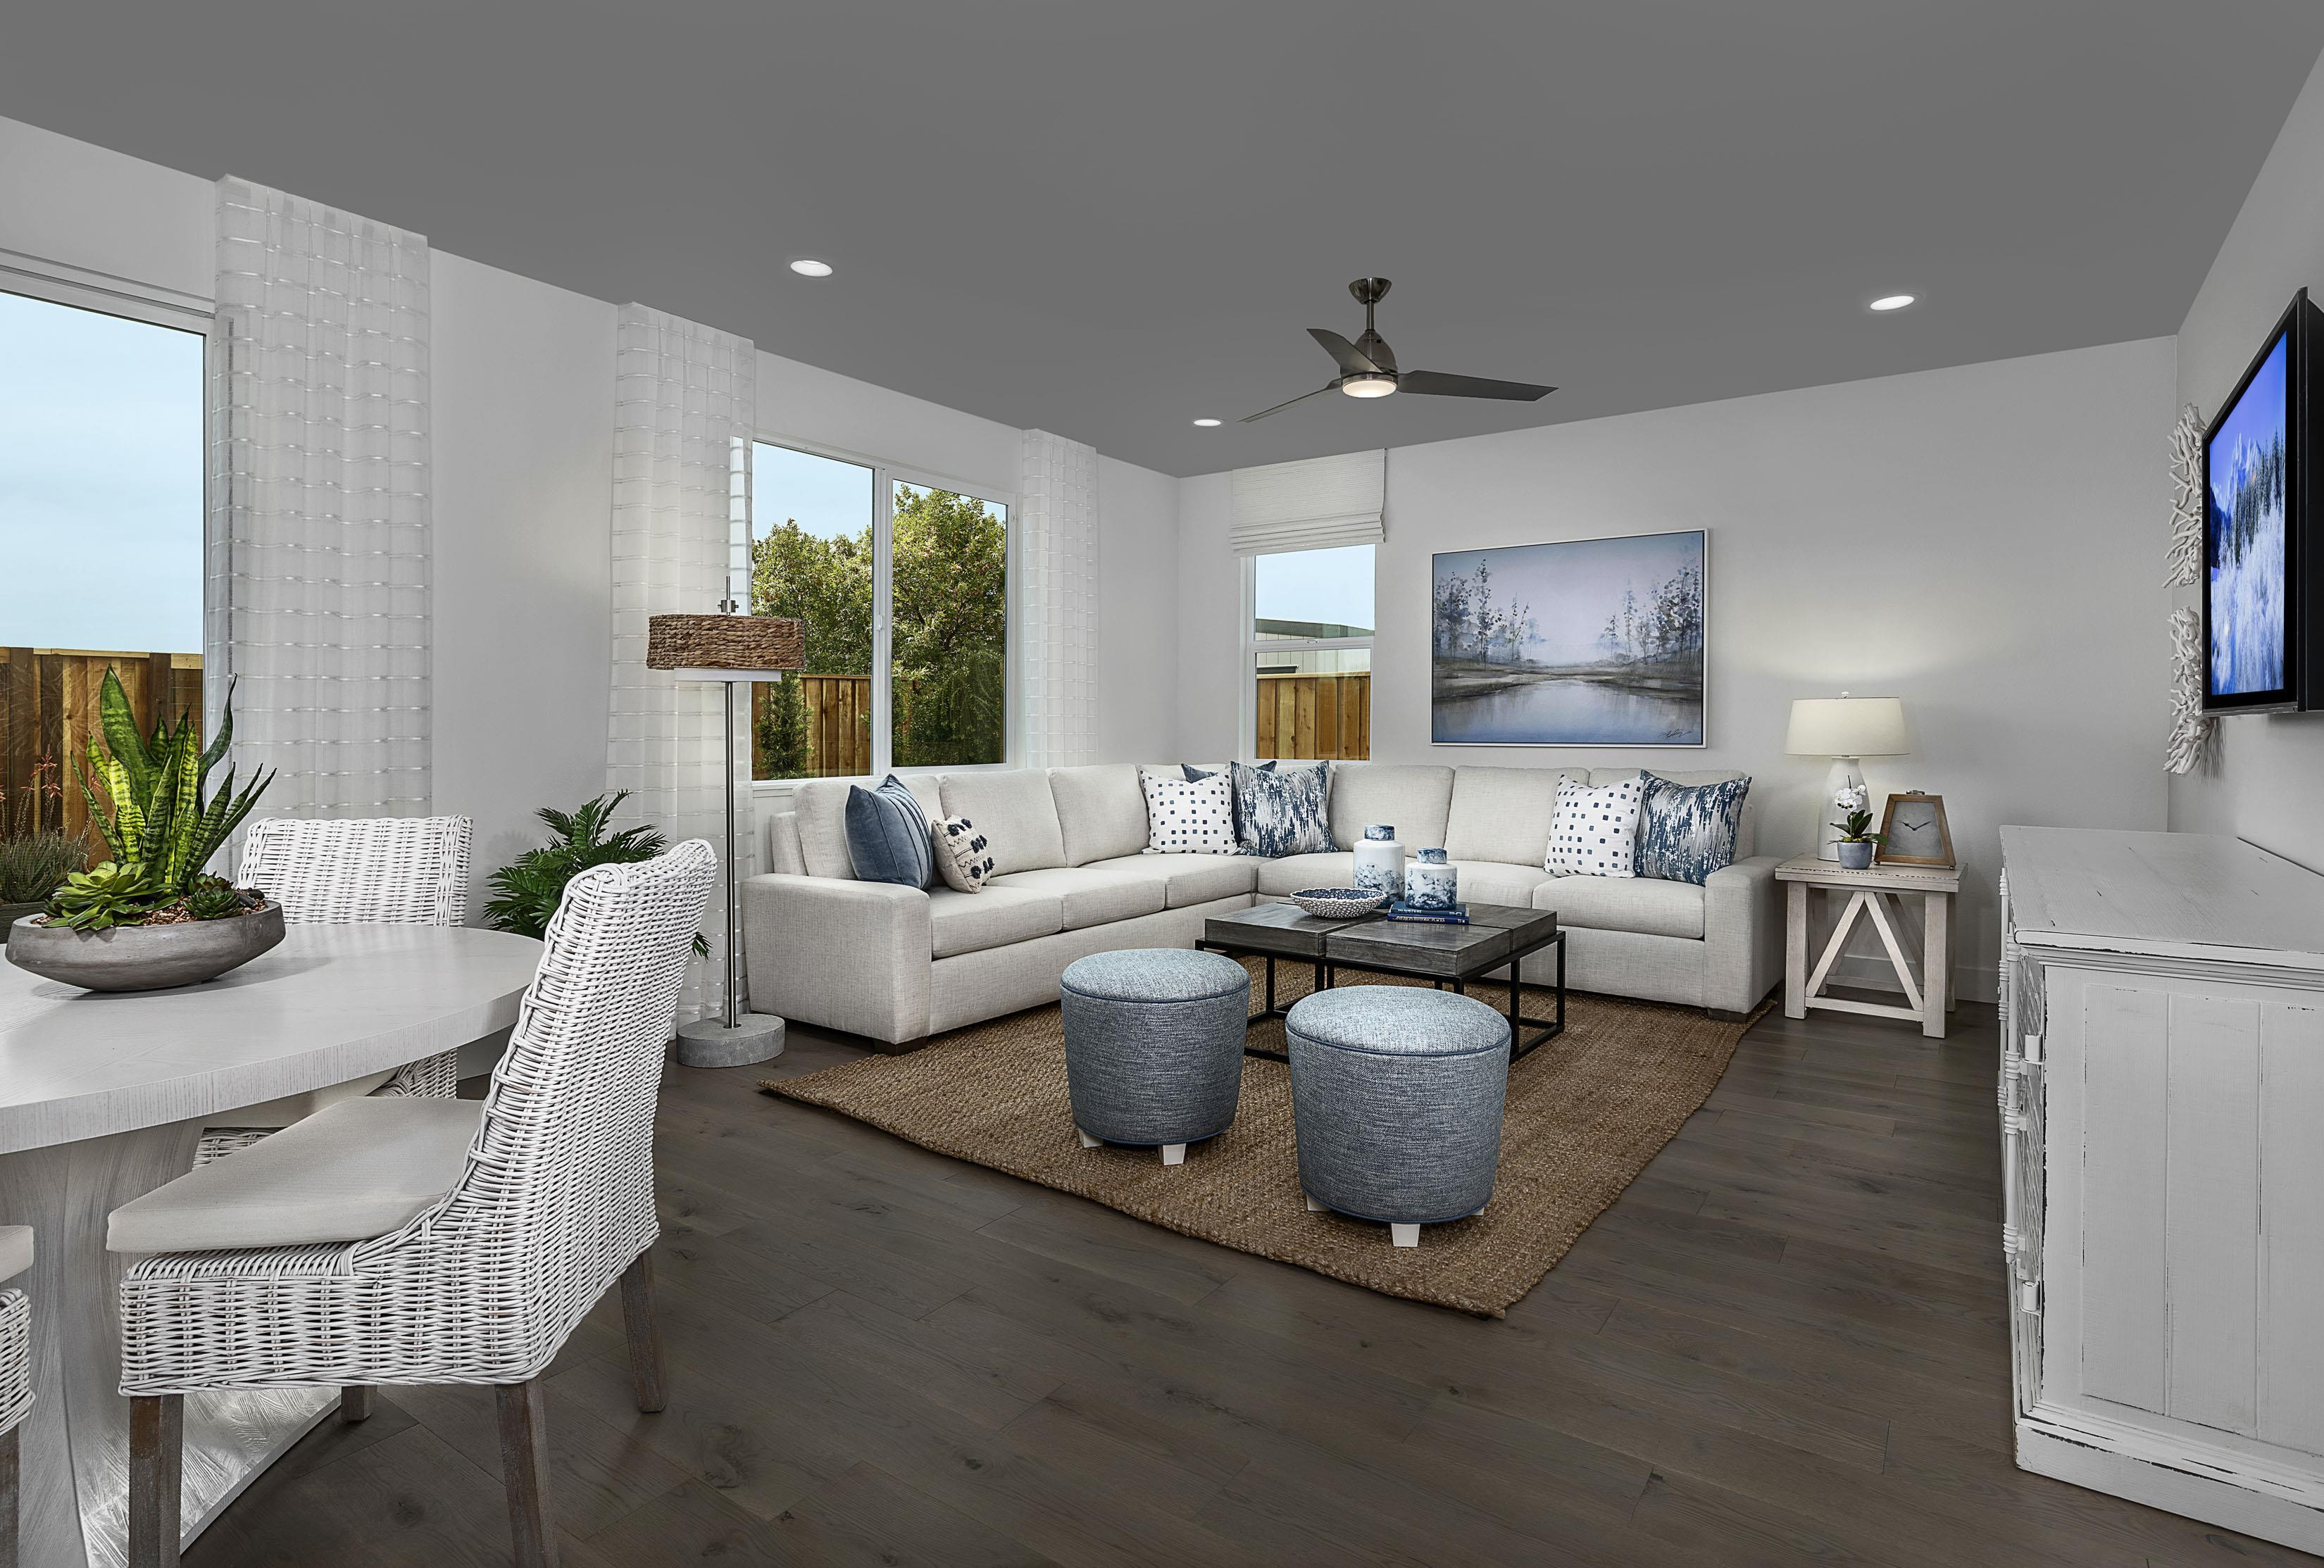 Living Area featured in the Carousel Residence 1 By Kiper Homes in Santa Cruz, CA